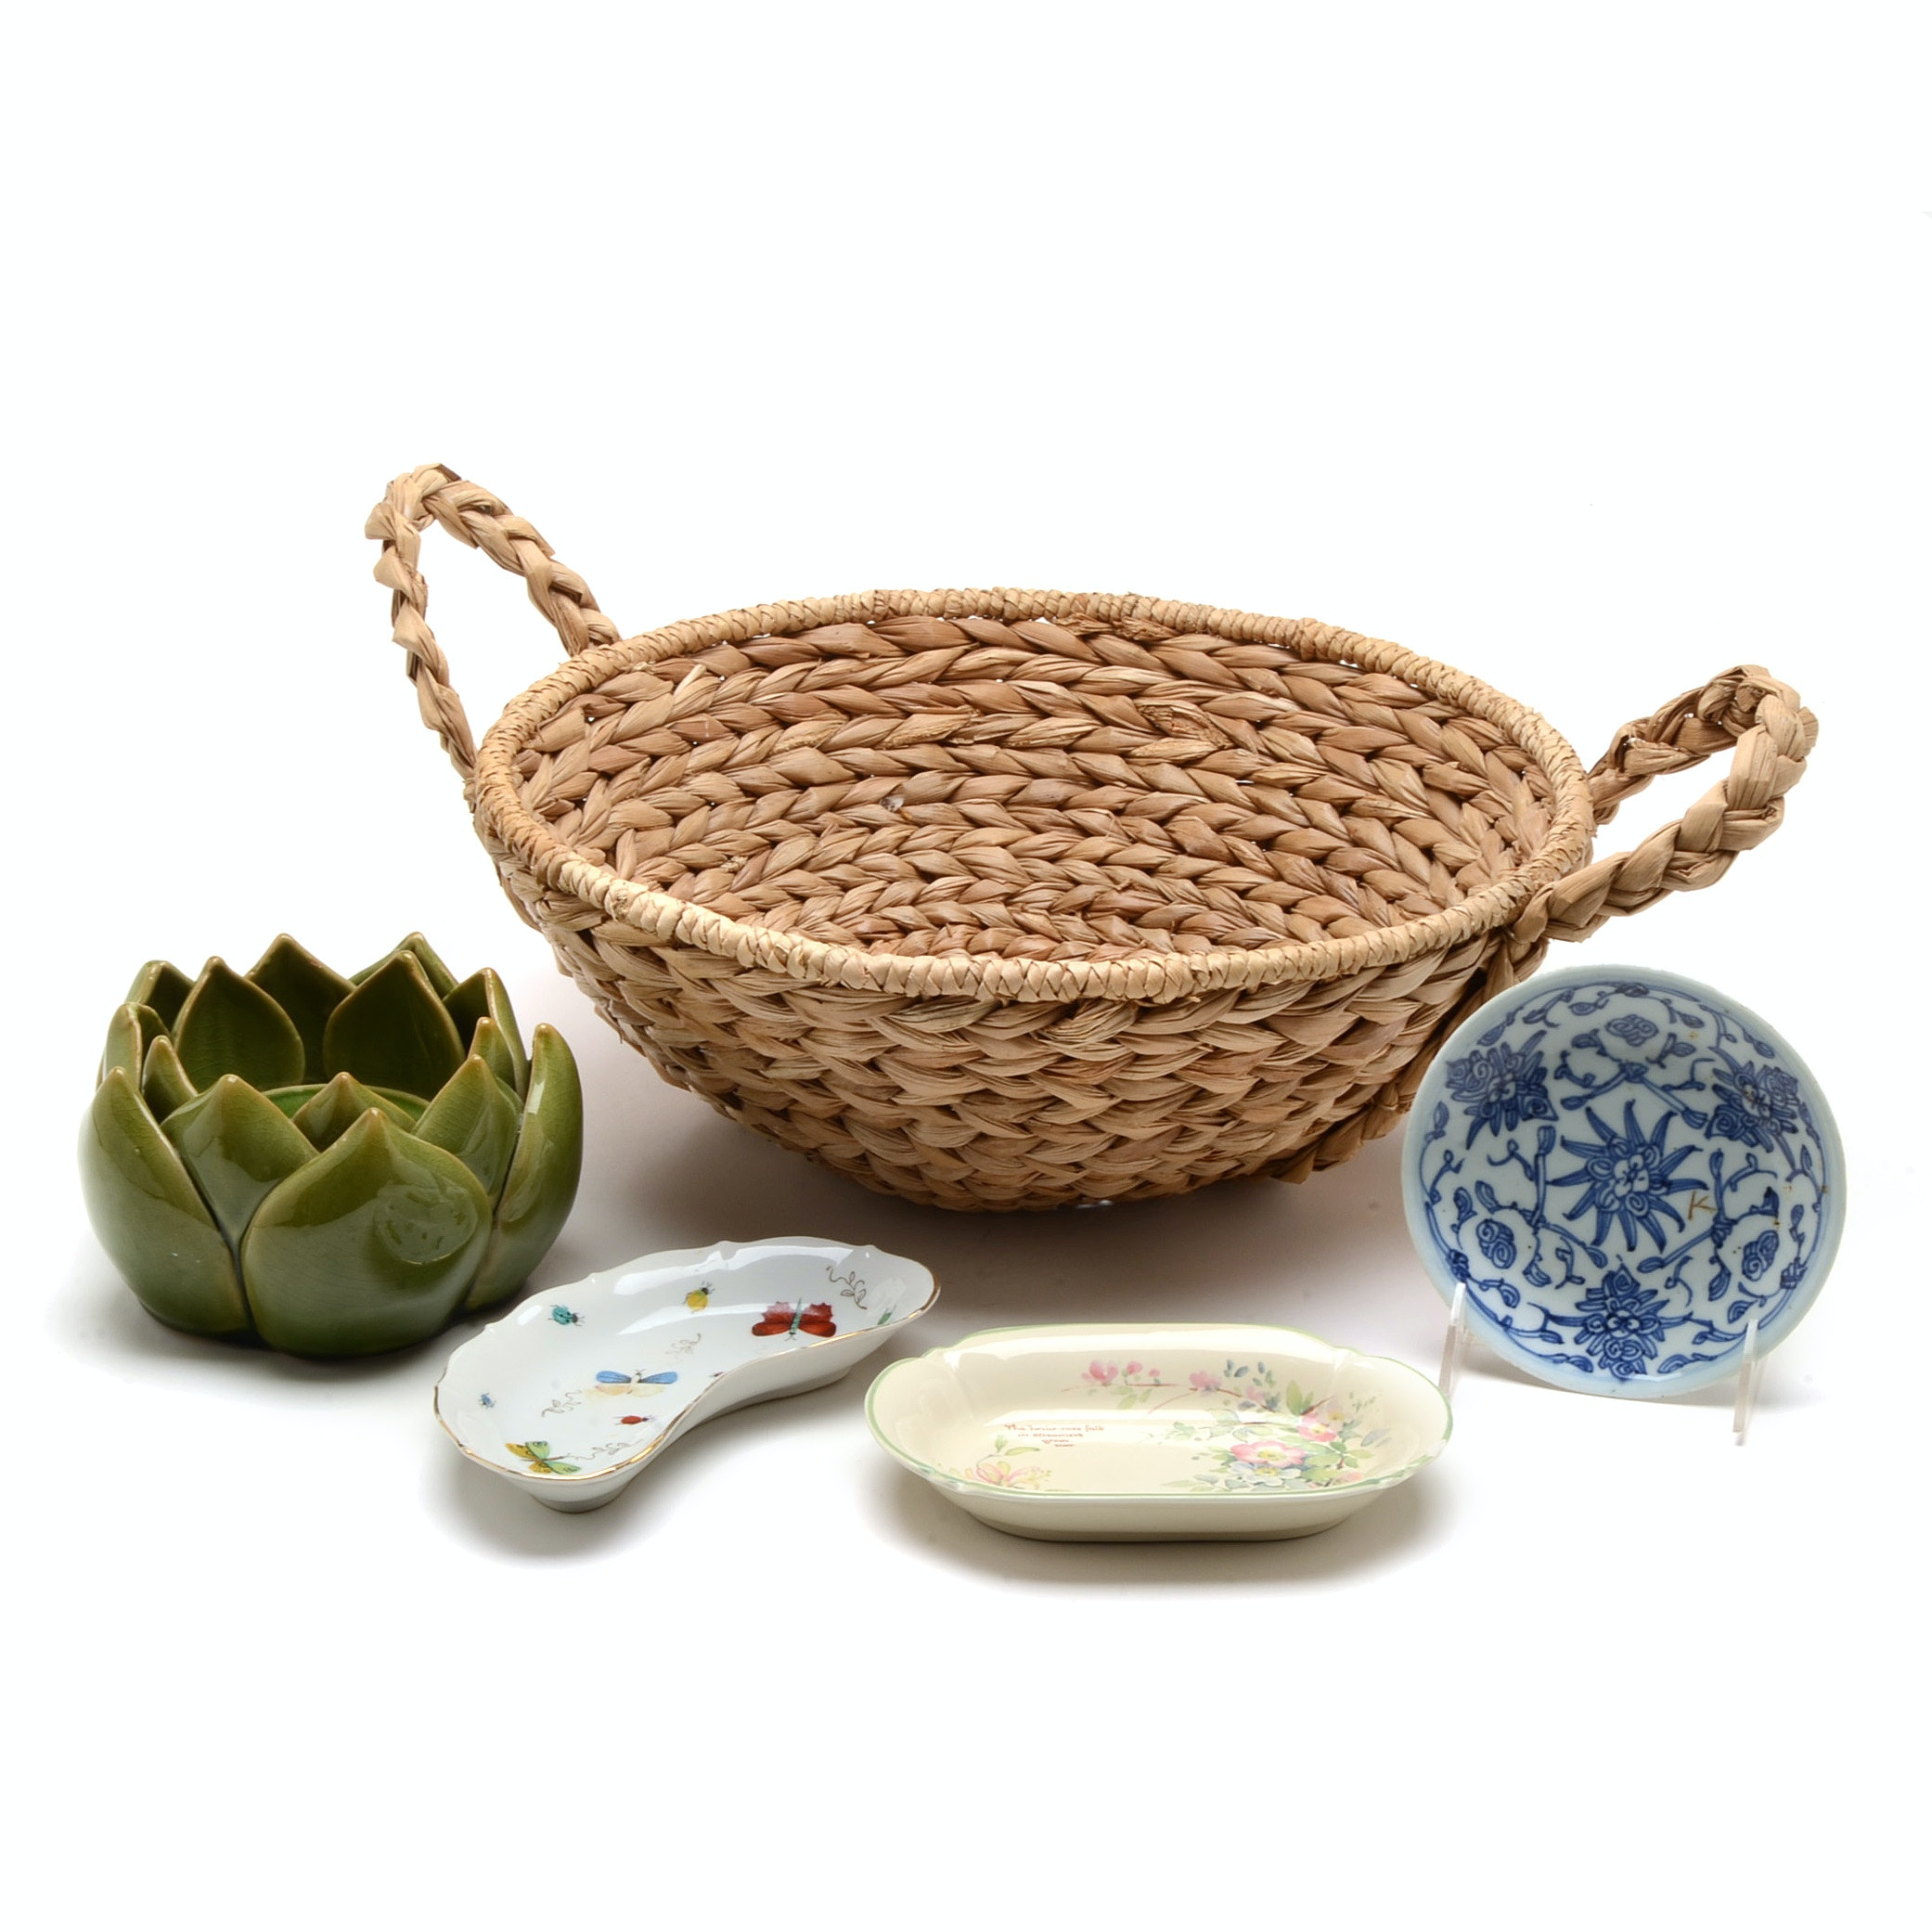 Collection of Ceramics and Basket